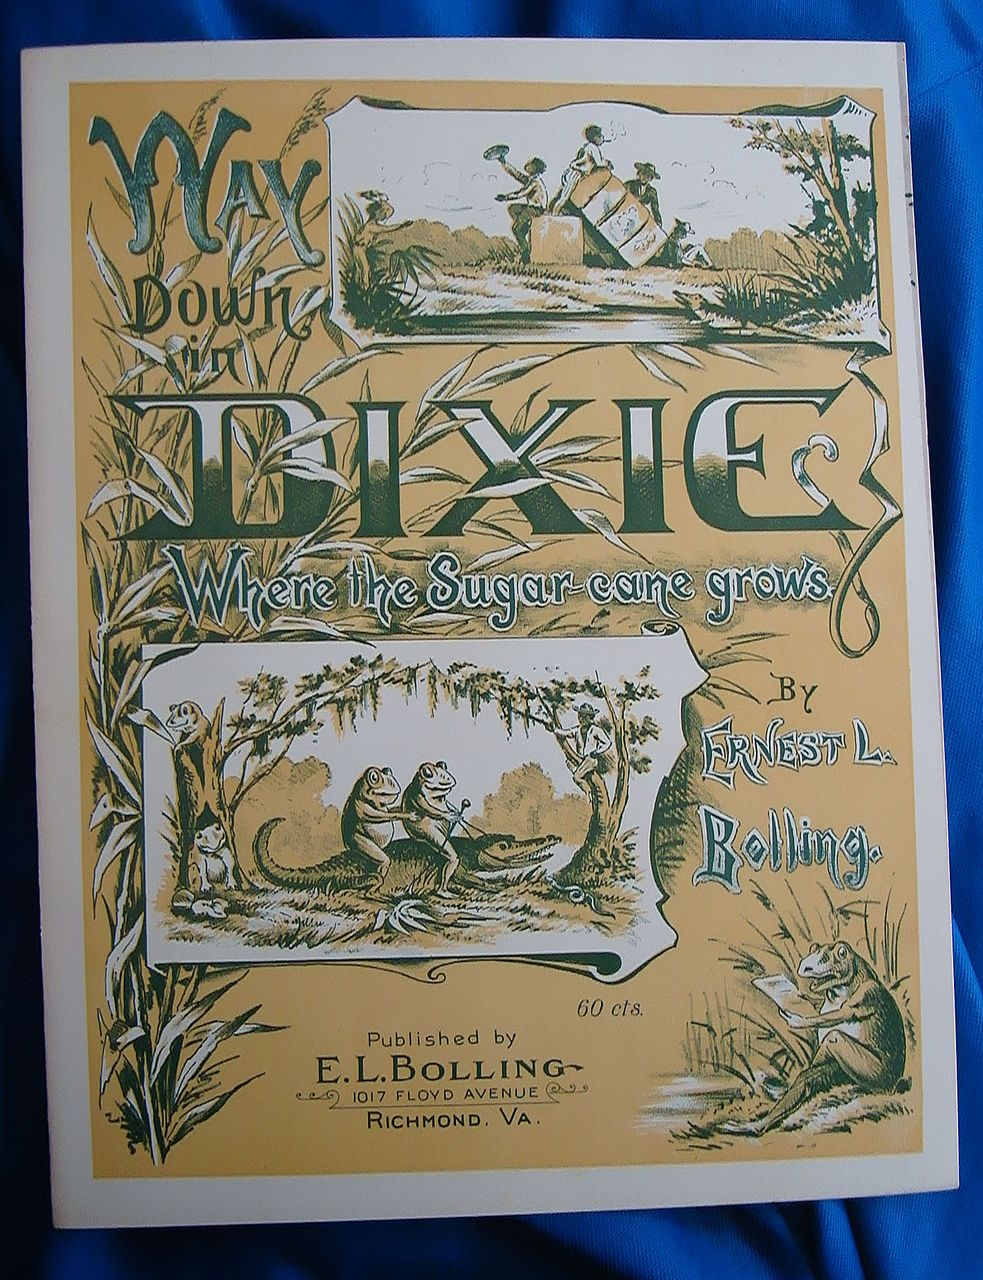 1905 Way Down in Dixie Sheet Music